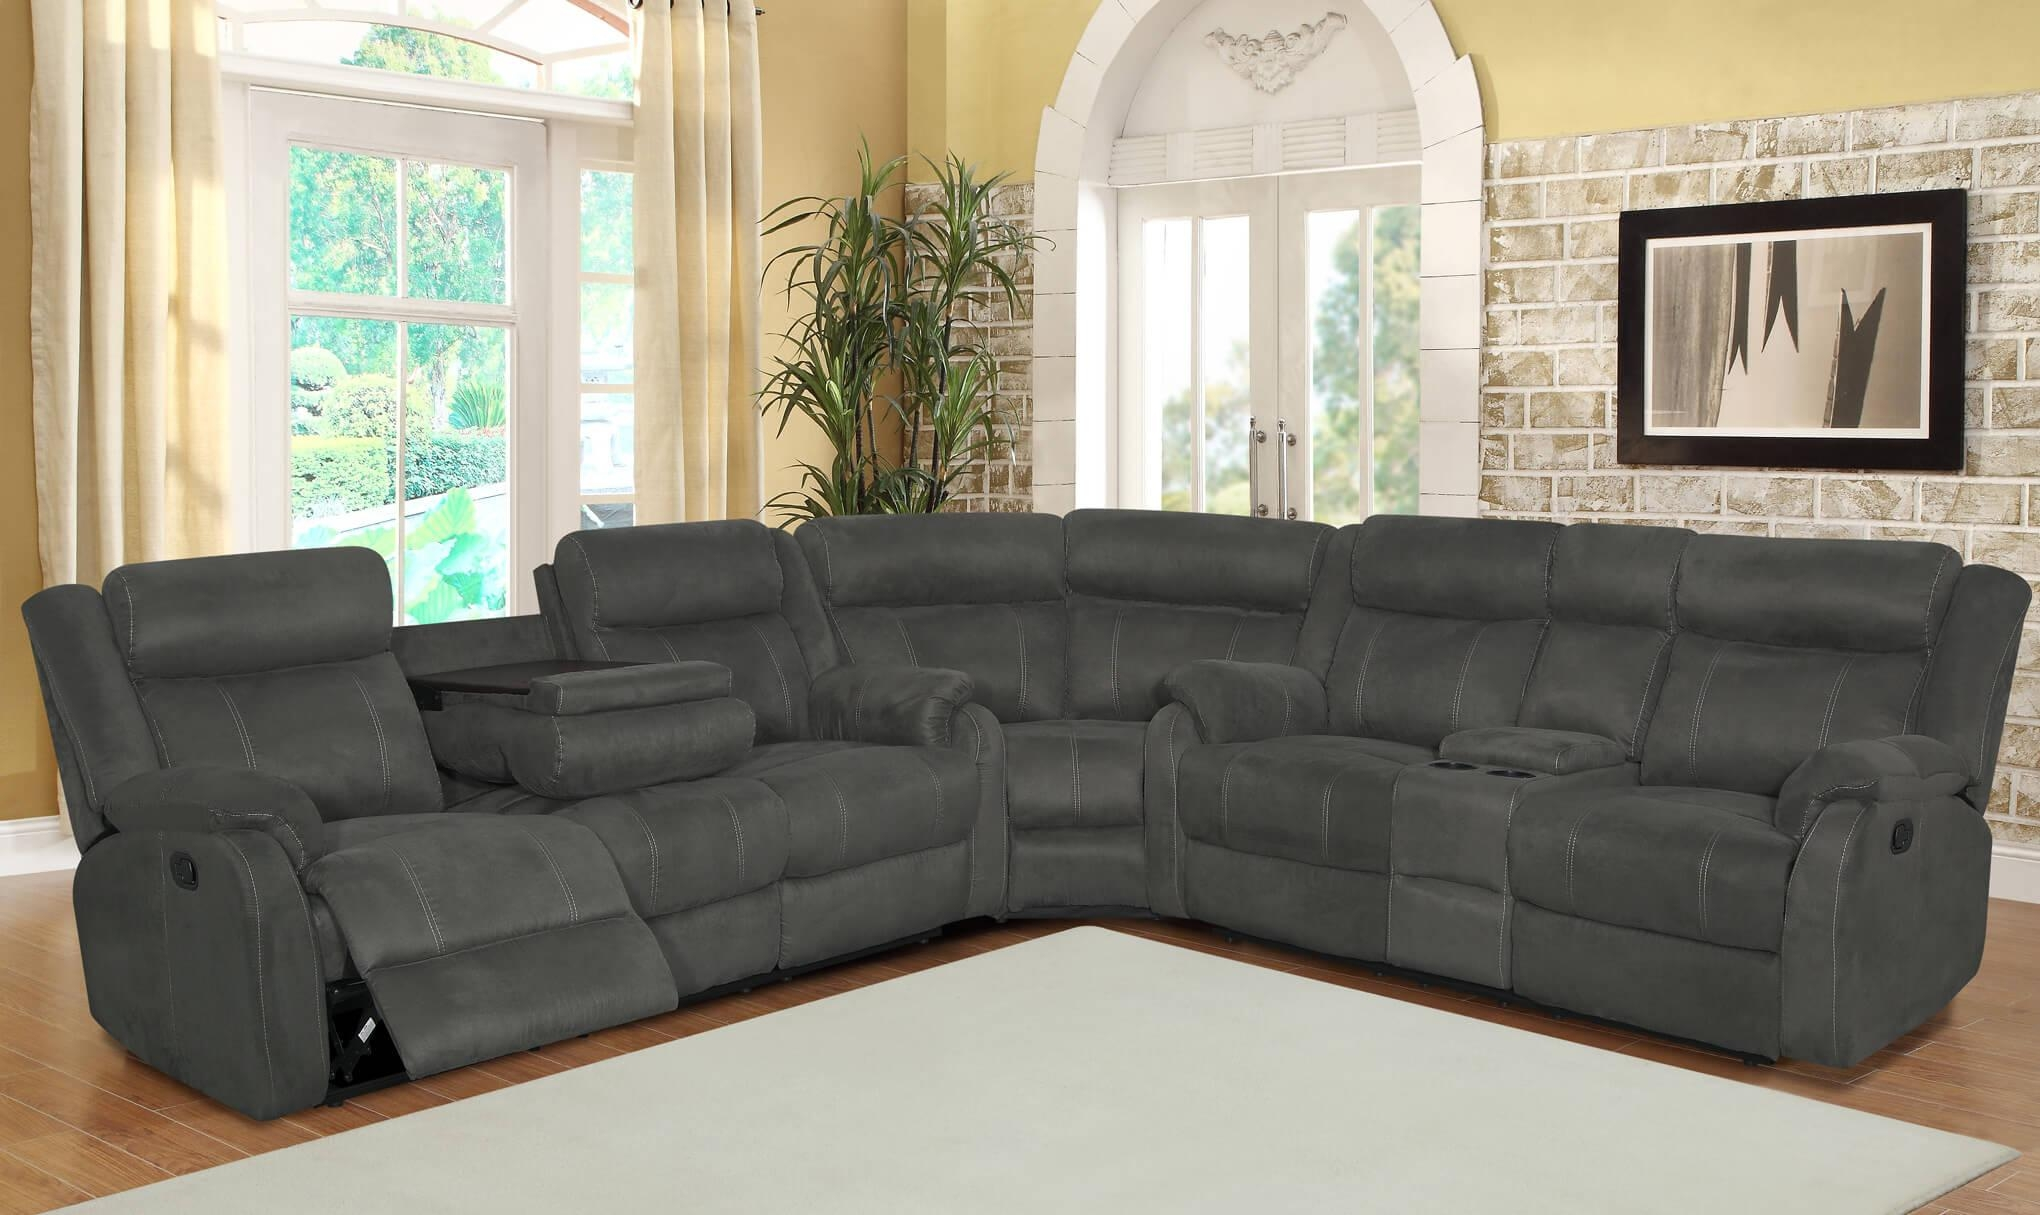 Sofas : Wonderful Reclining Sectional With Chaise Leather Regarding Recliner Sectional Sofas (Image 22 of 22)